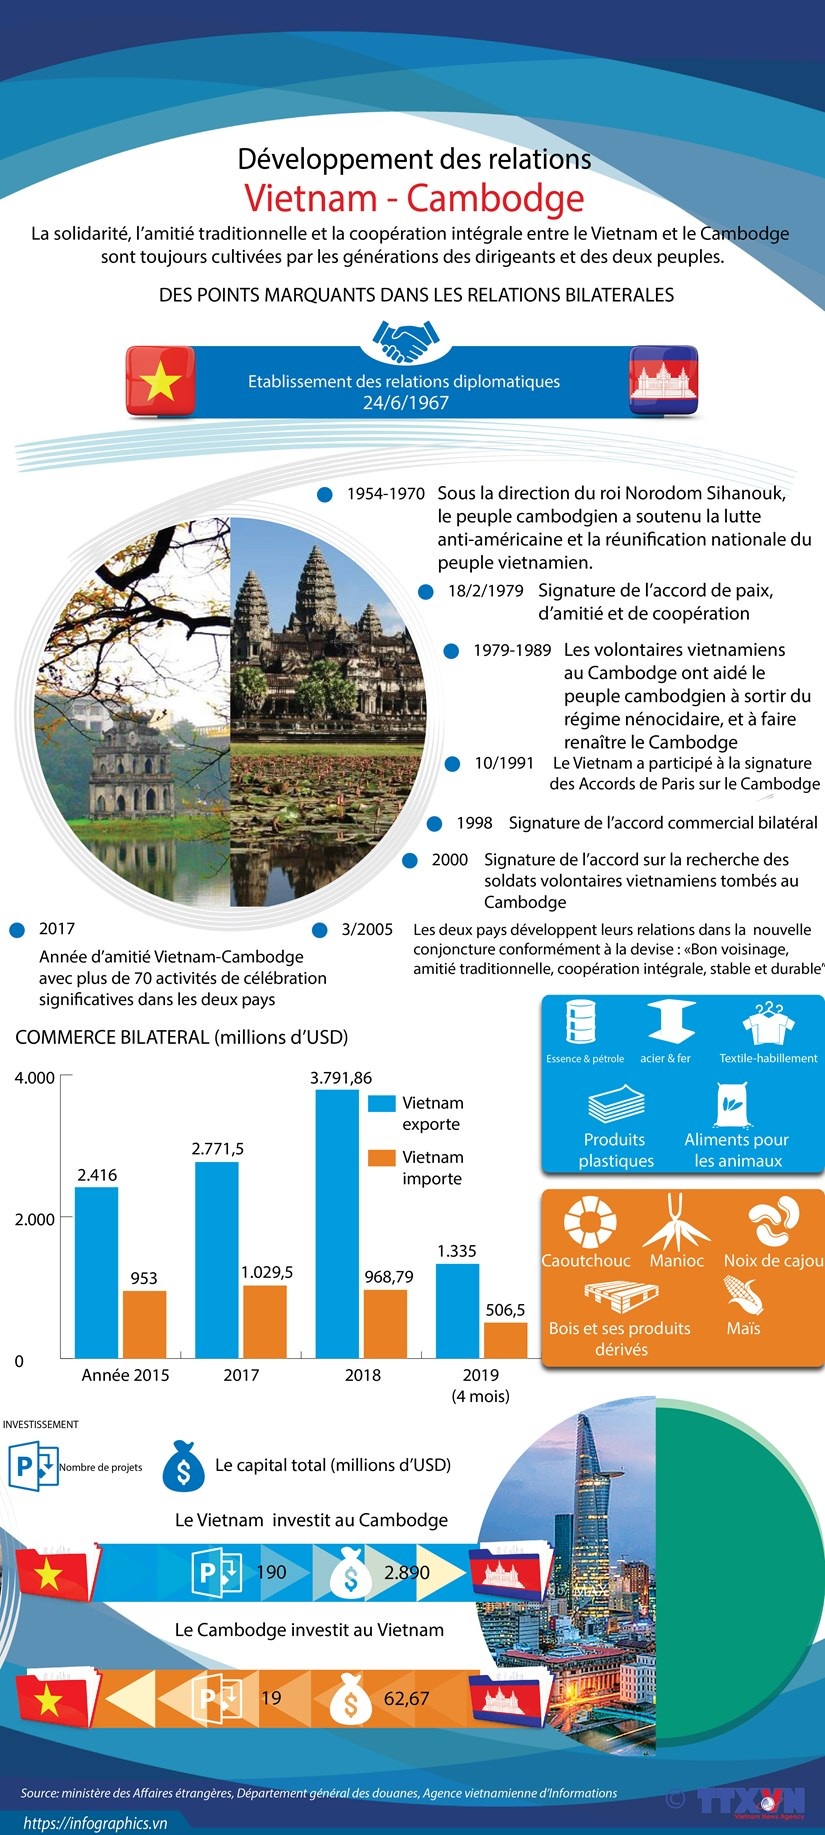 Developpement des relations Vietnam – Cambodge hinh anh 1